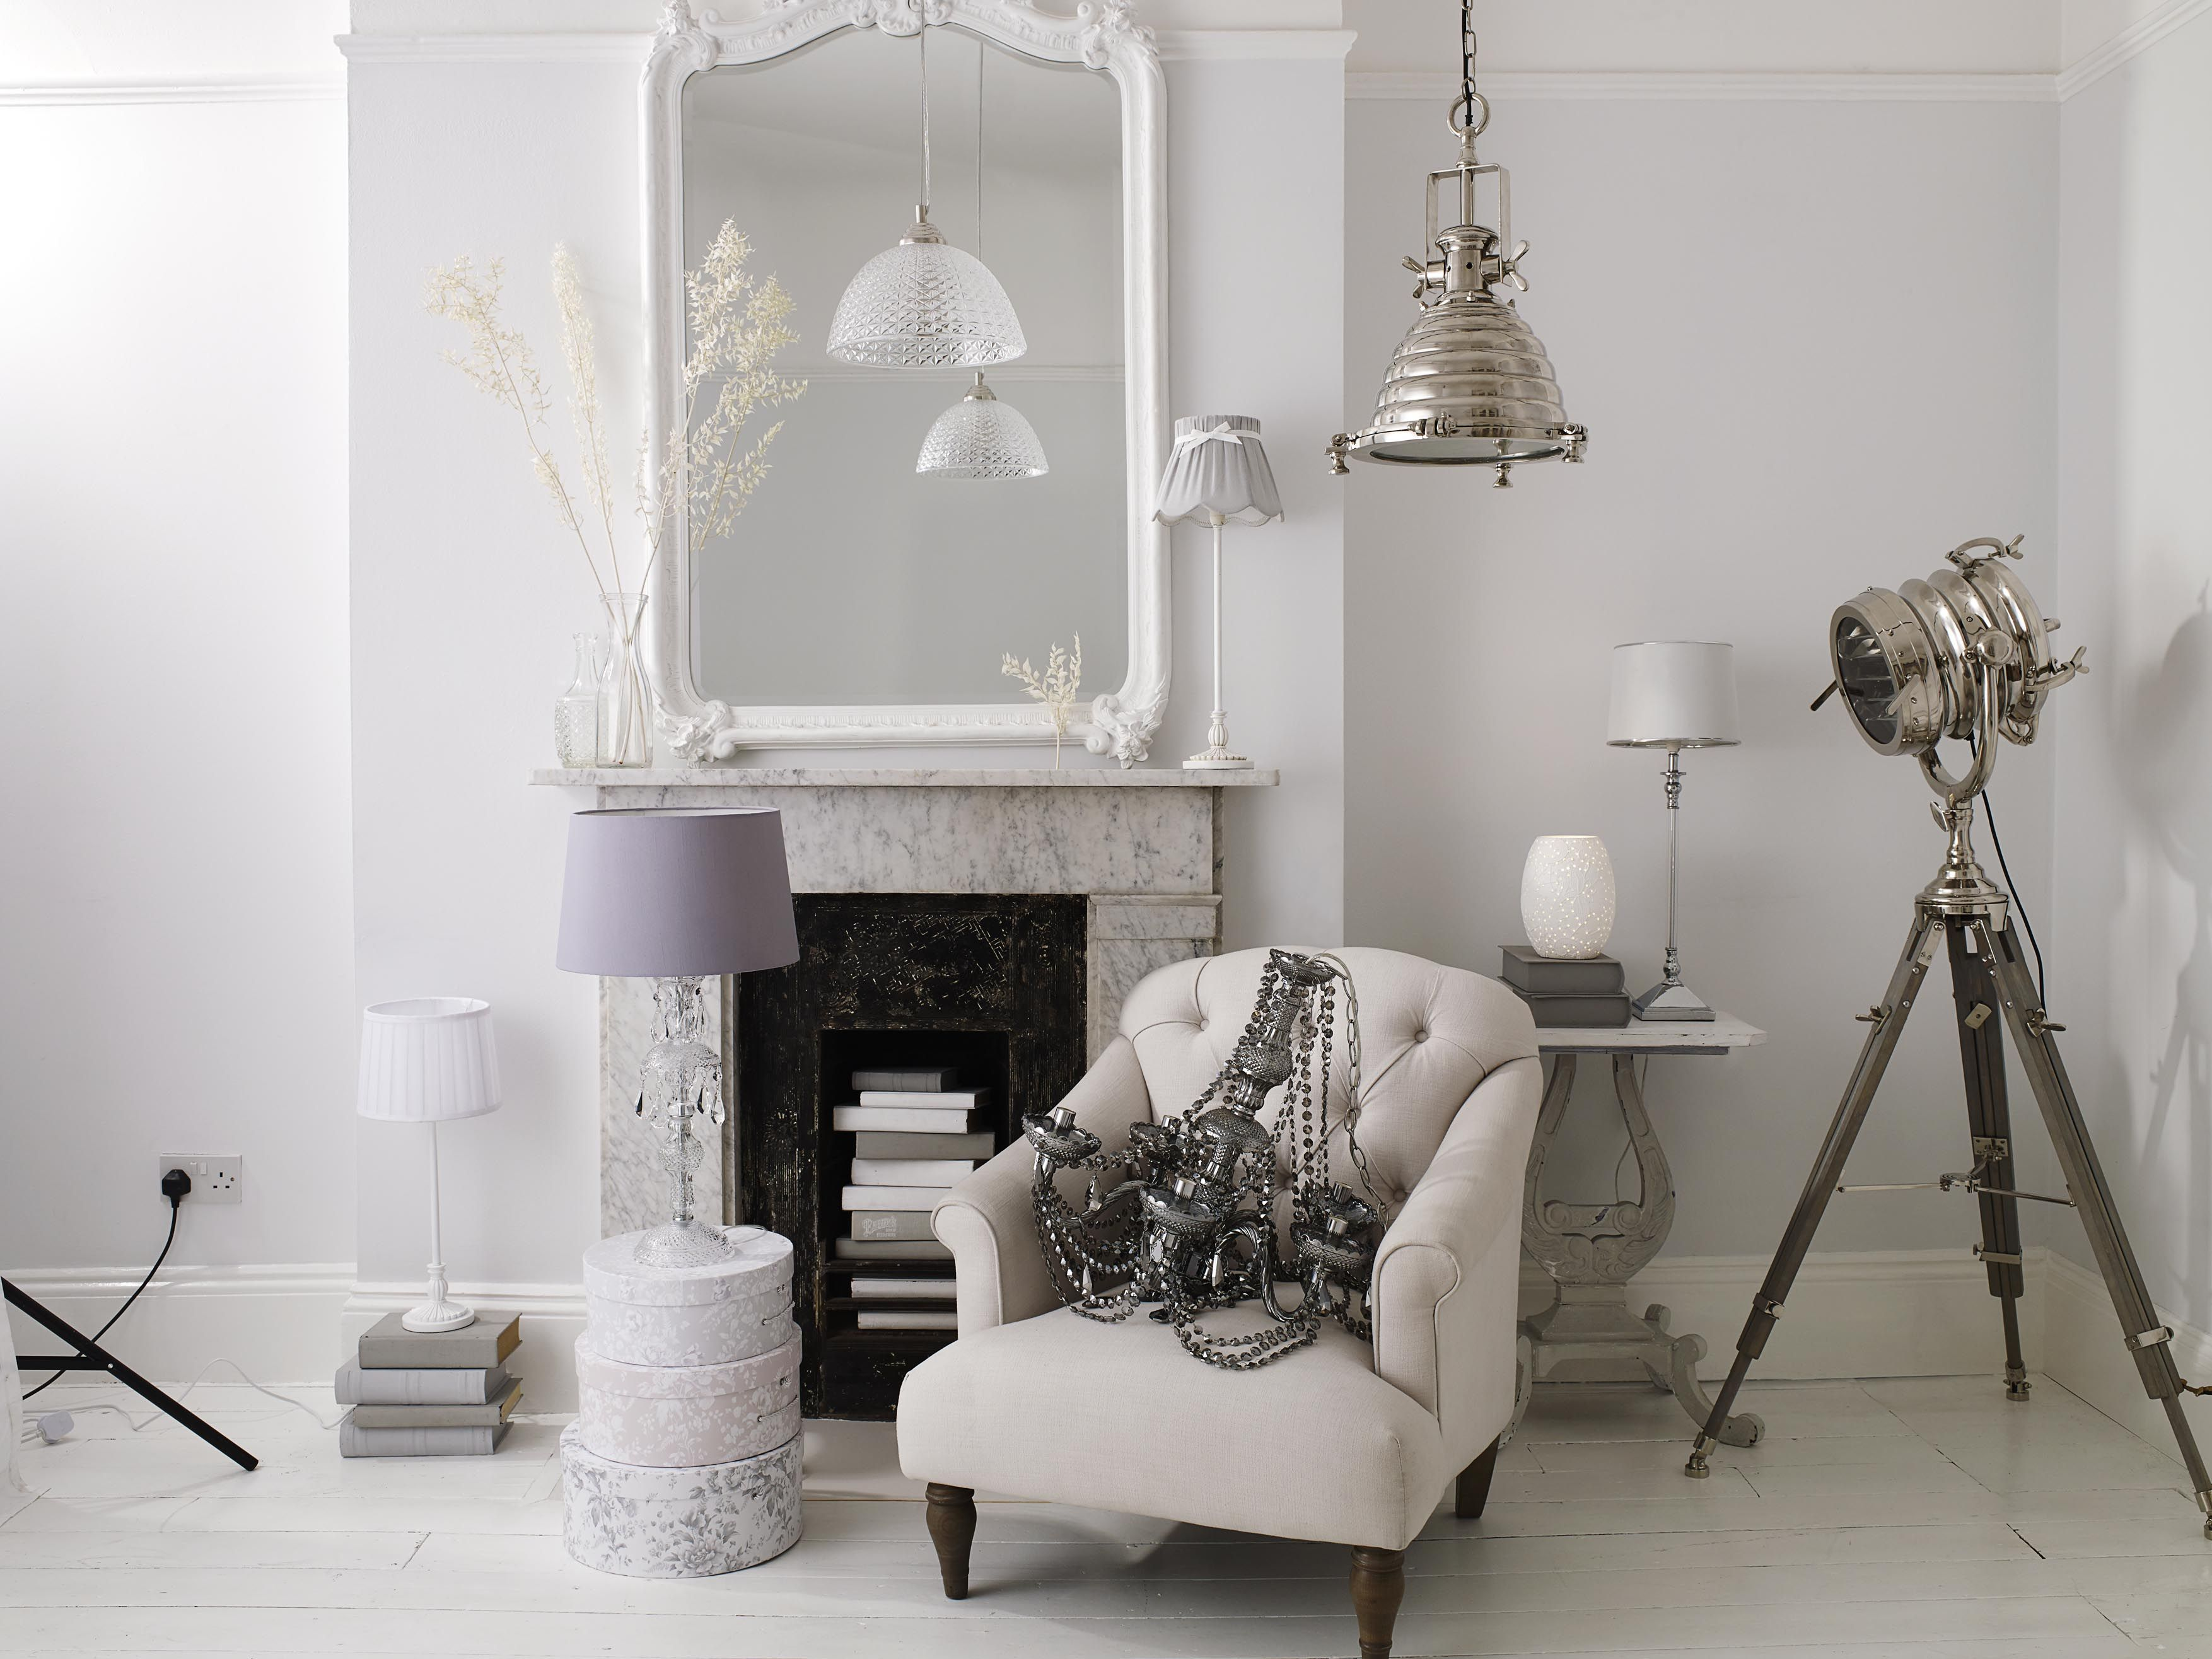 Bhs Ss15 Holly Willoughby Interior Home Decor Home